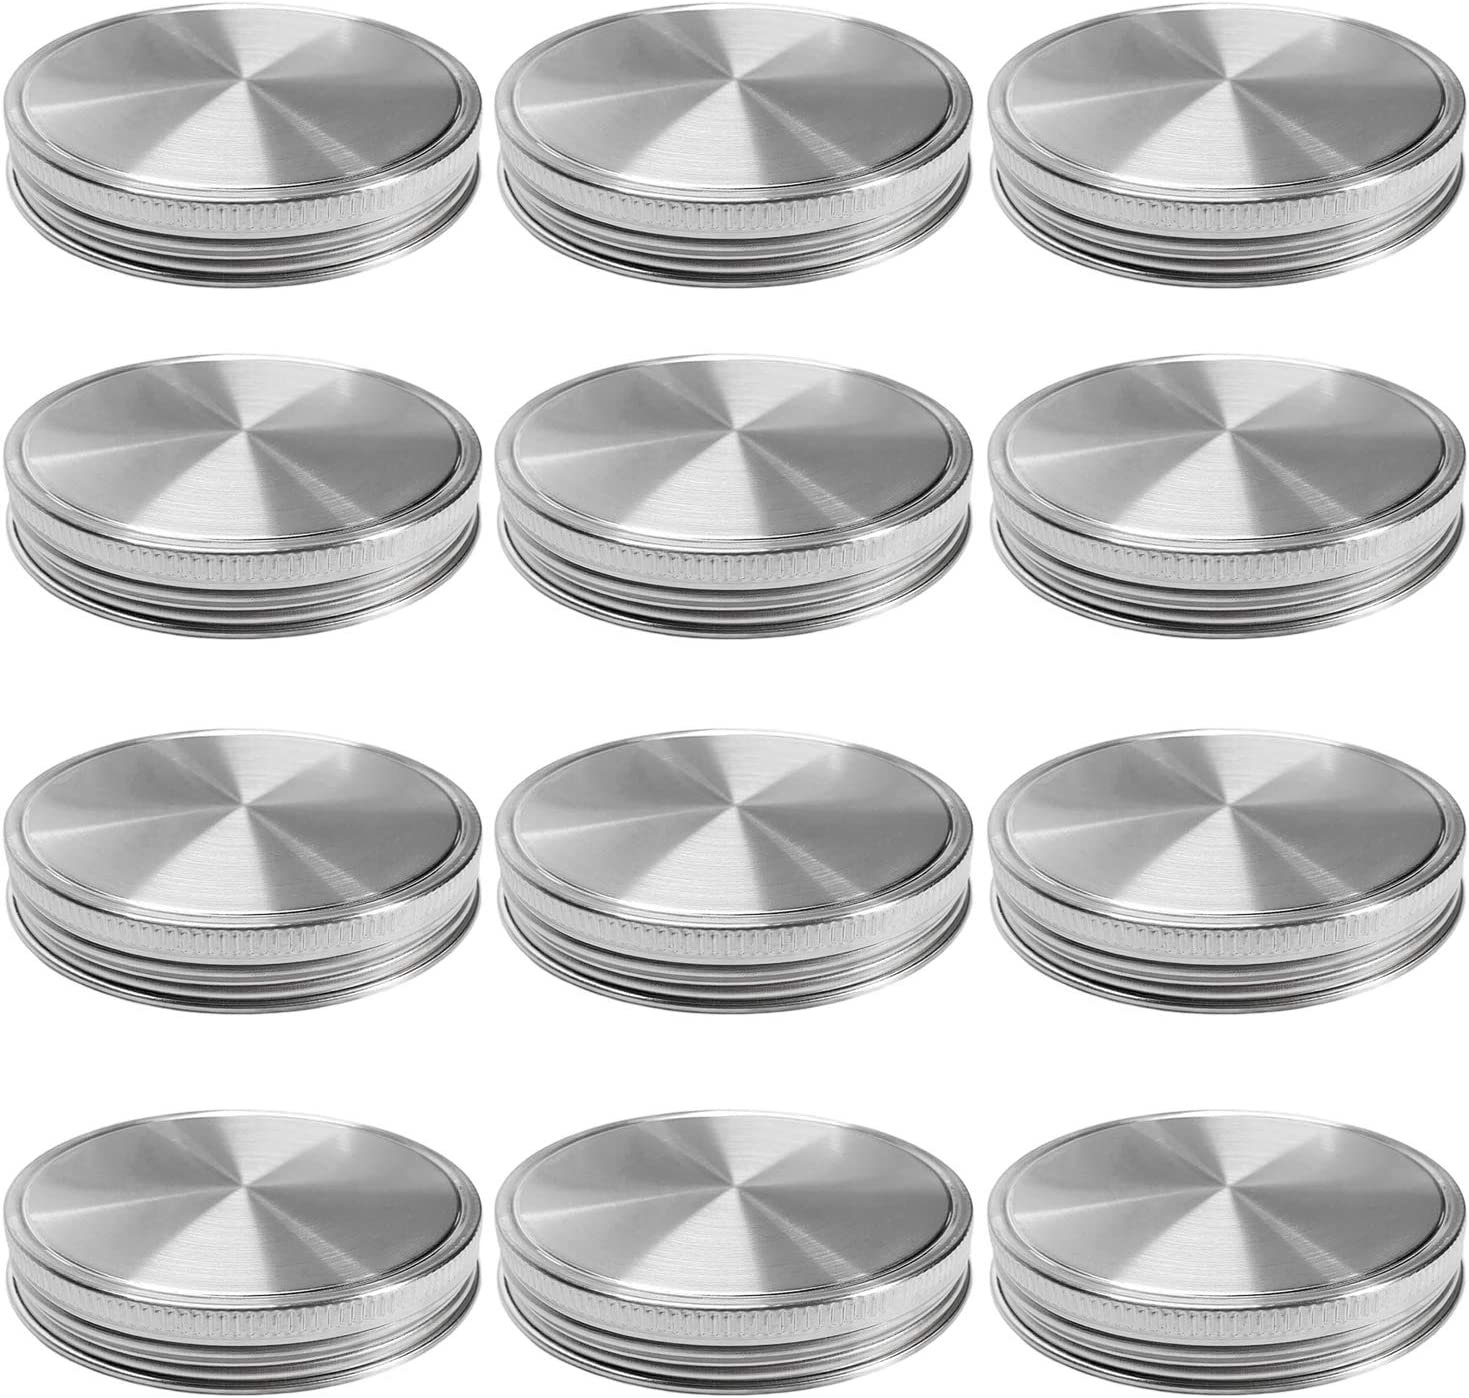 Stainless Steel Mason Jar Lids, Storage Caps with Silicone Seals for Wide Mouth Size Jars, Polished Surface, Reusable and Leak Proof, Pack of 12 (12-Pack Wide Mouth stainless steel)